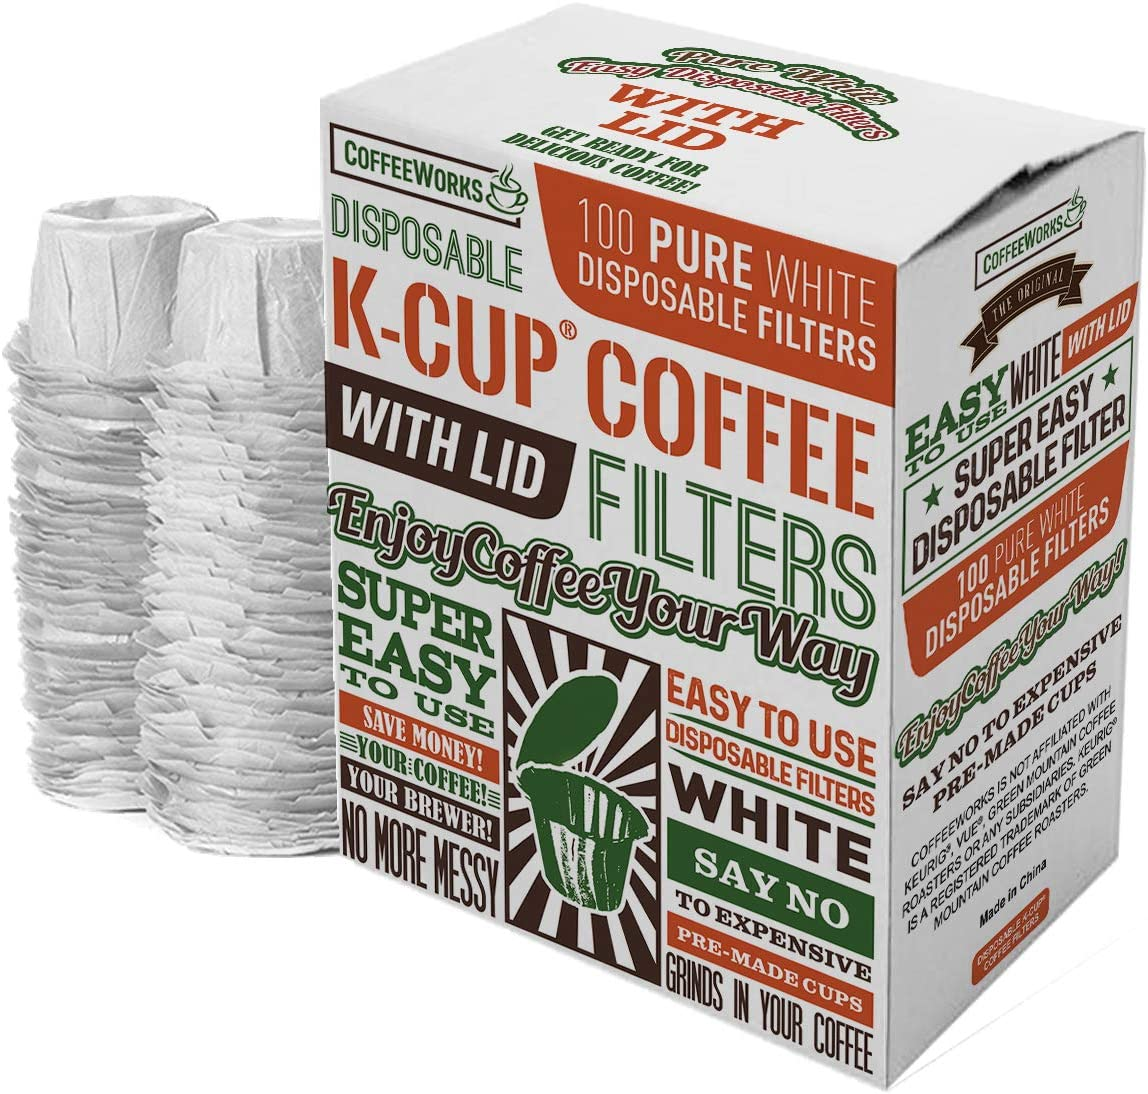 Disposable White Paper Coffee Filters - Replace With Premium ...